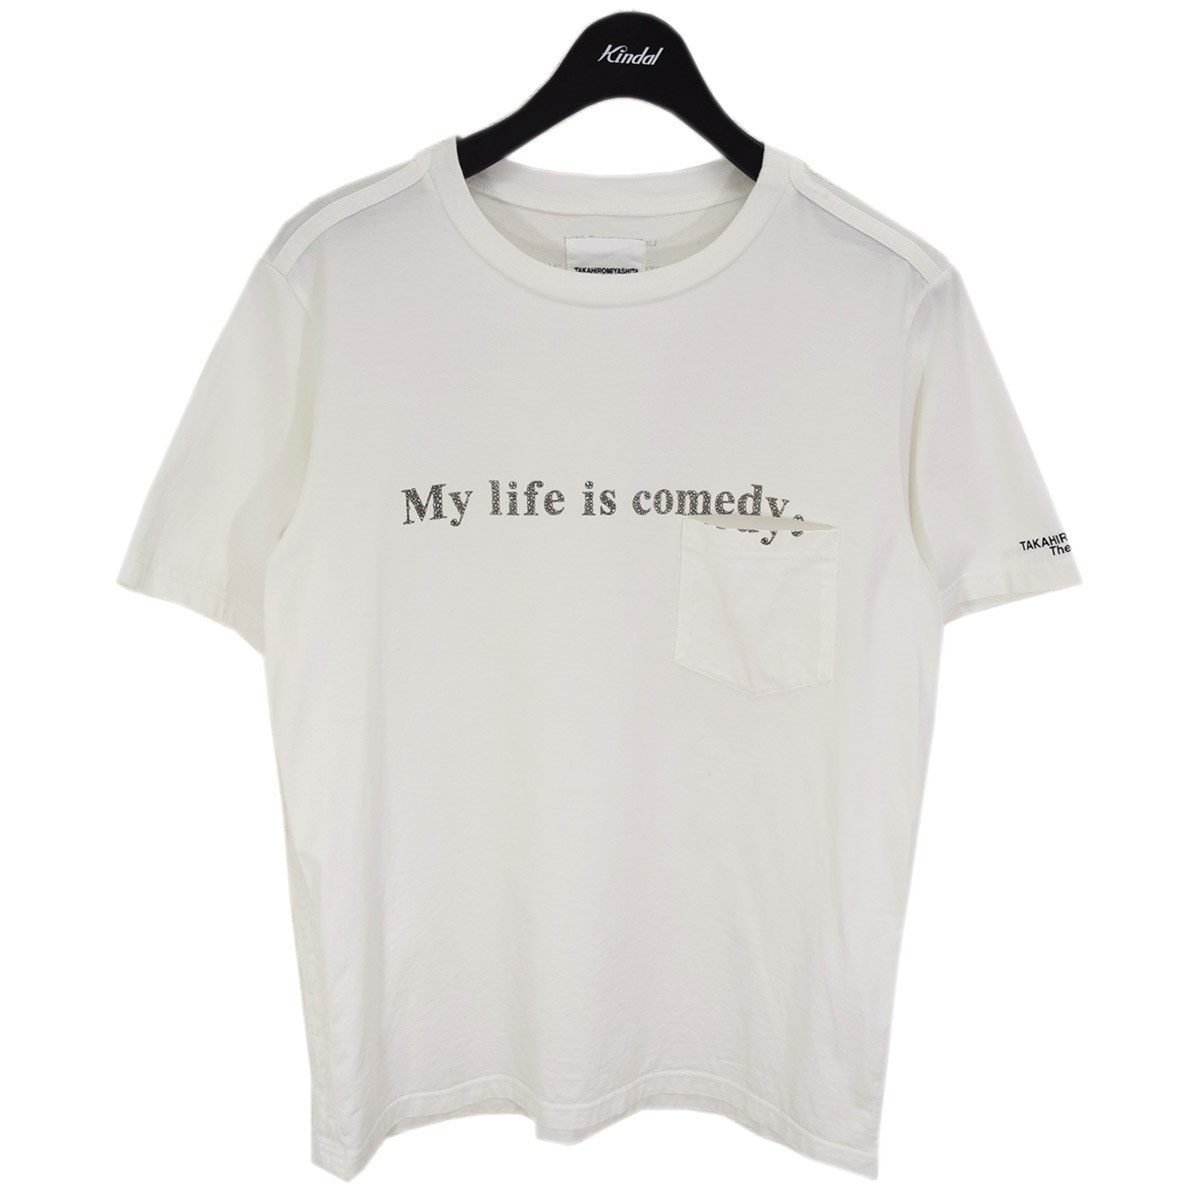 トップス, Tシャツ・カットソー TAKAHIROMIYASHITA TheSoloIst My life is comedy T 2020AW 44 061220